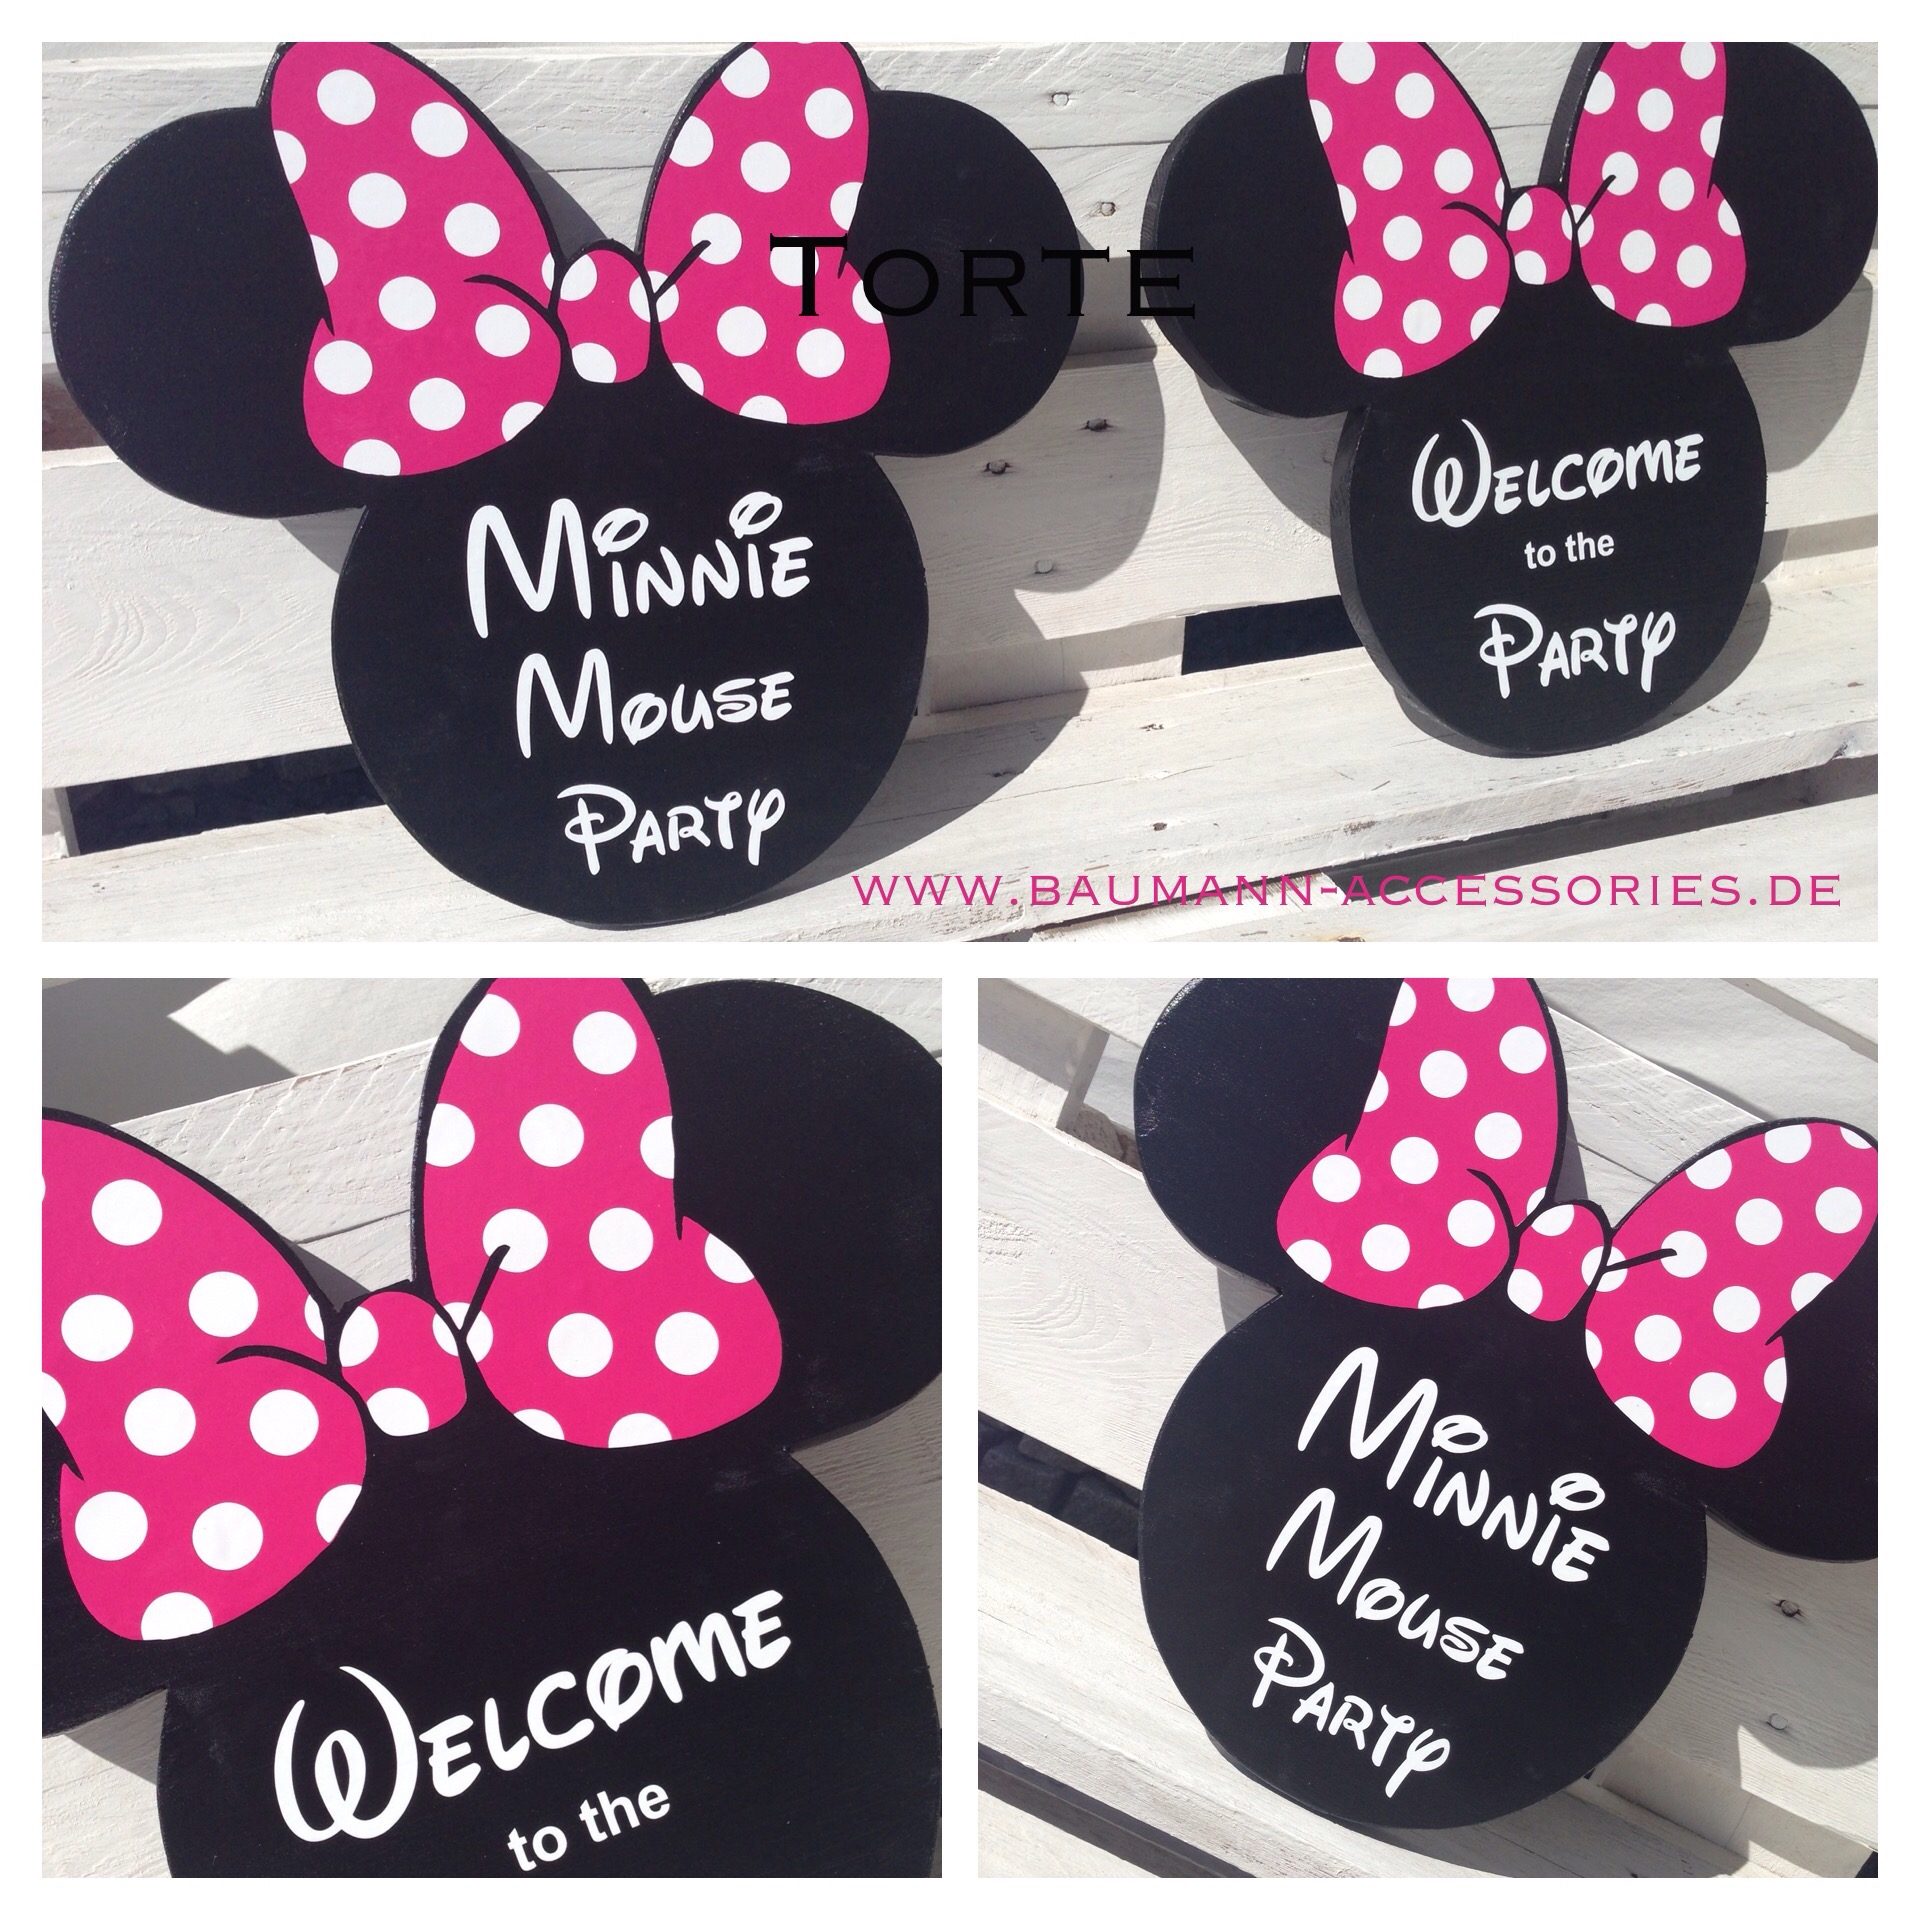 die vorbereitungen f r die minnie mouse party laufen baumann accessories. Black Bedroom Furniture Sets. Home Design Ideas